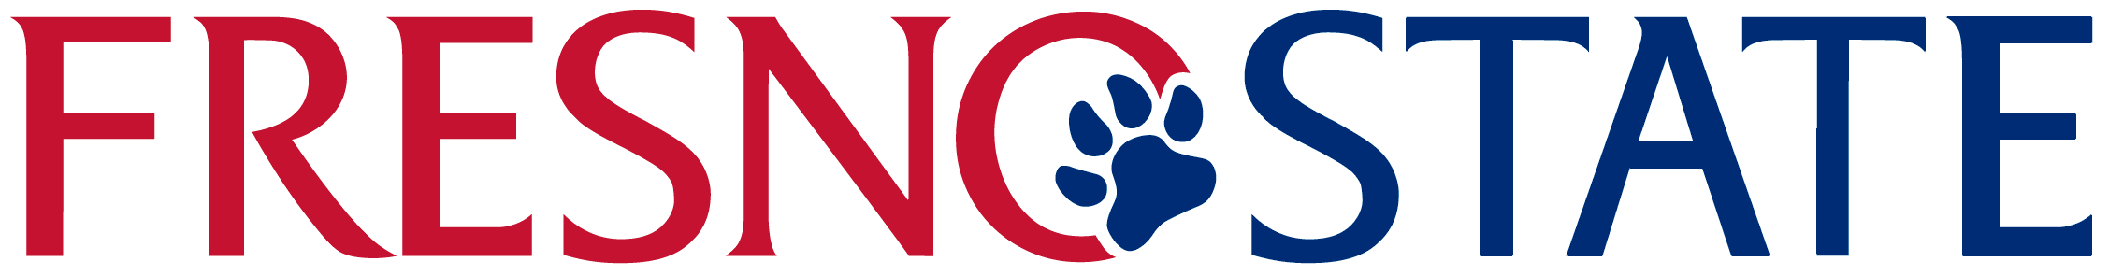 Image result for fresno state logo